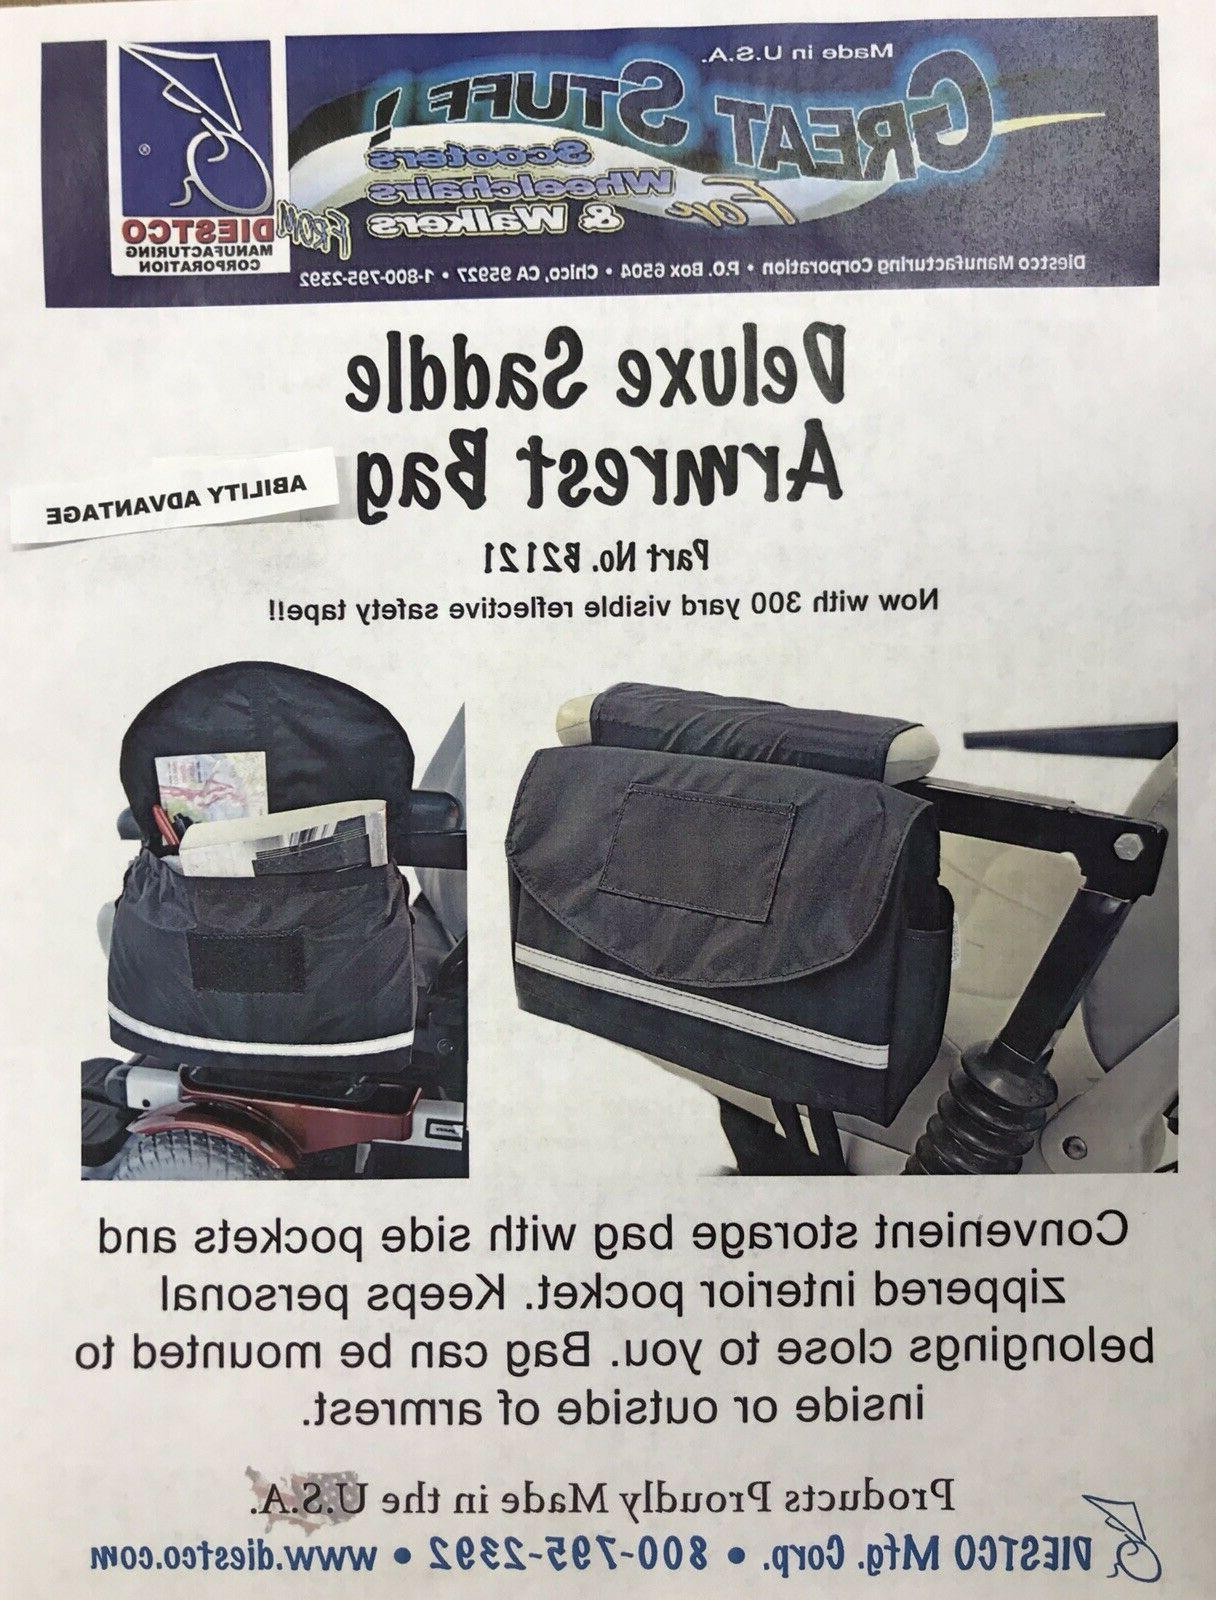 deluxe armrest saddle bag for mobility scooters